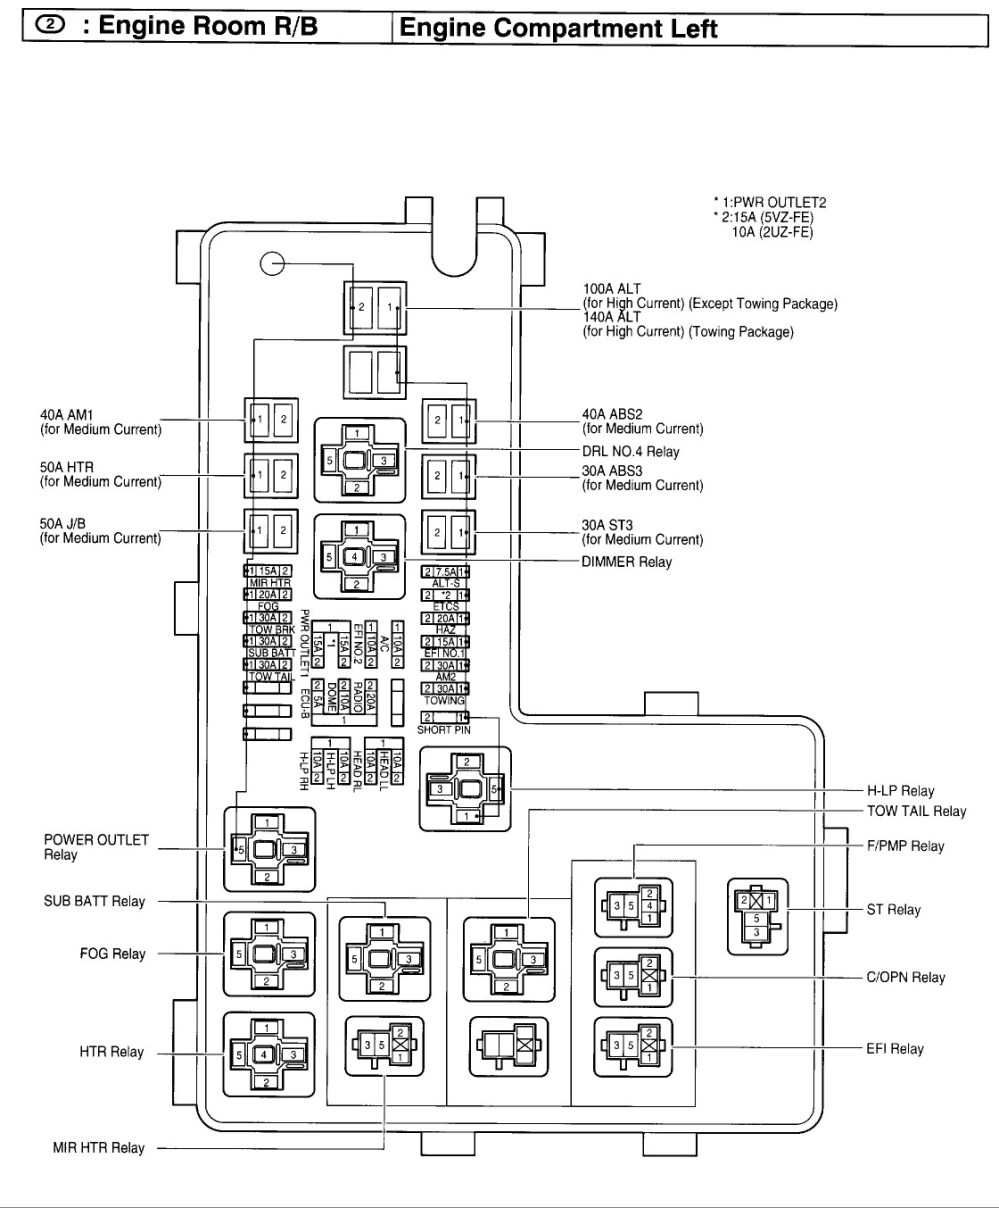 medium resolution of 2003 sequoia ac wiring diagram wiring diagram advance 2003 sequoia ac wiring diagram